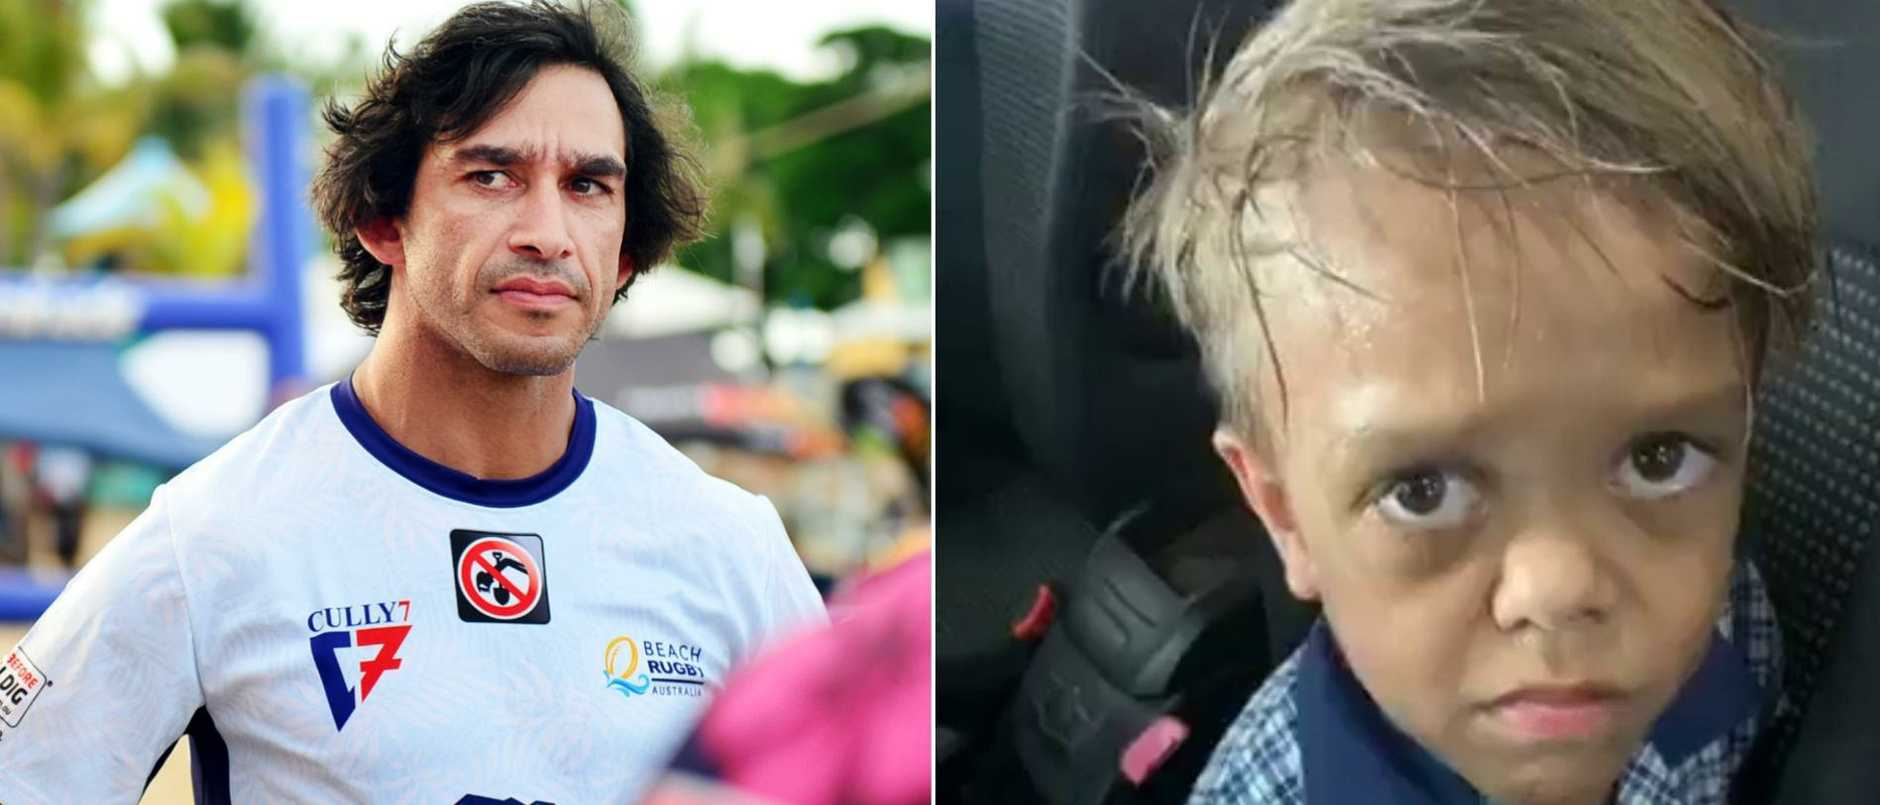 Johnathan Thurston has described the bullying of Quaden Bayles as heartbreaking.